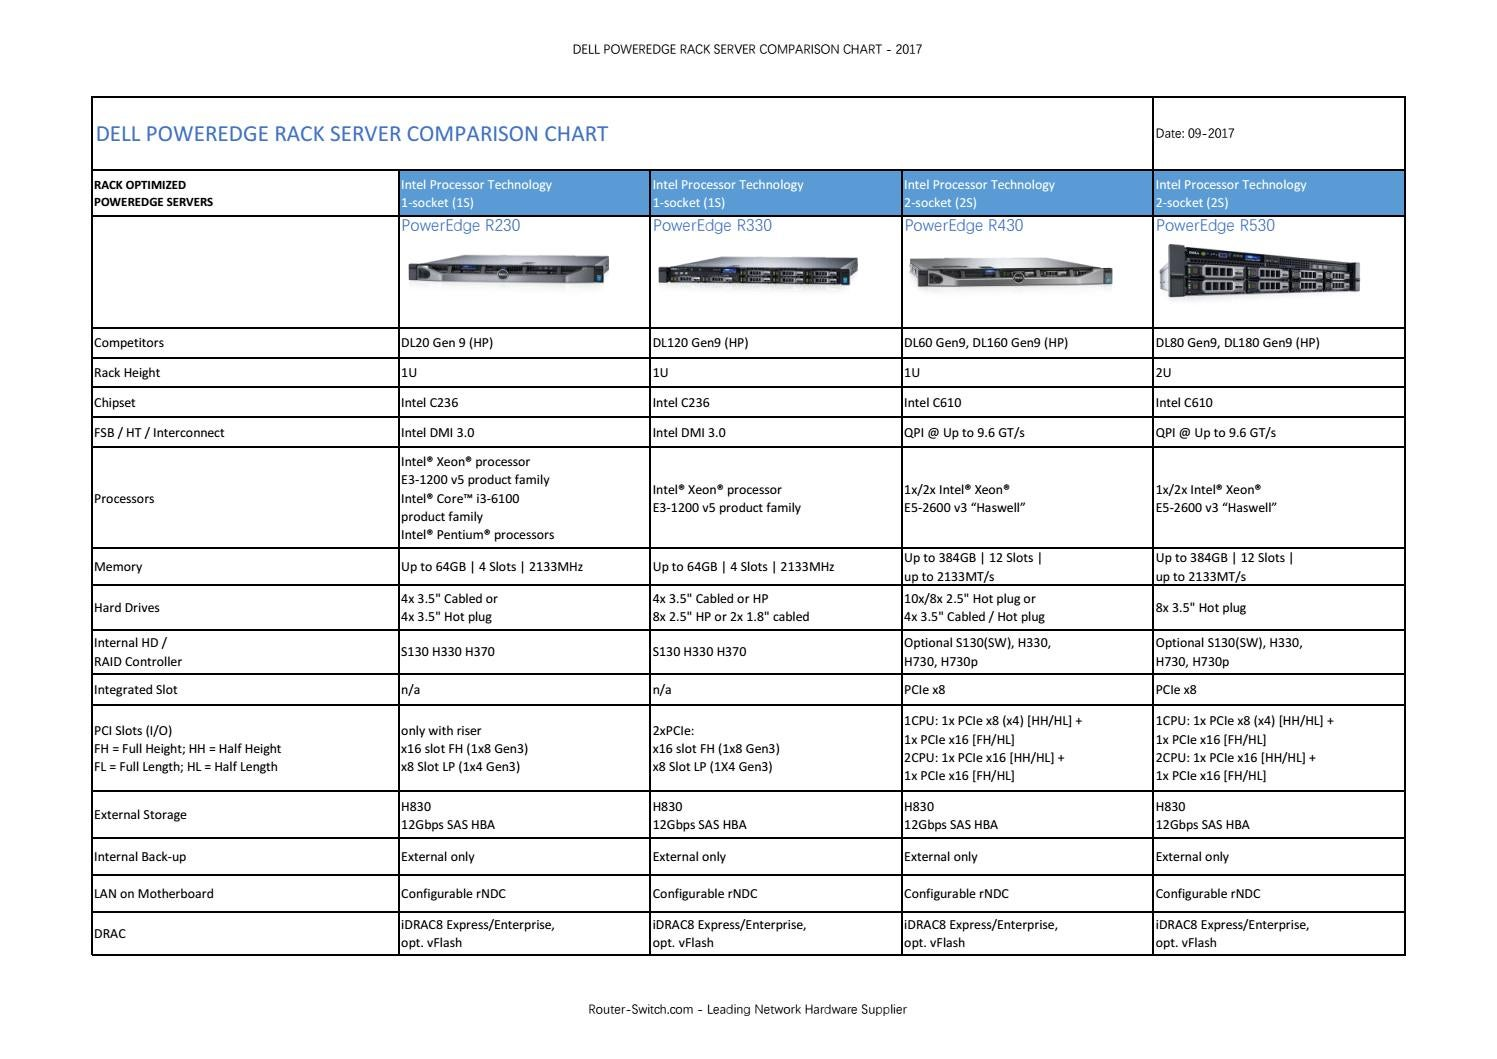 Dell poweredge rack server comparison chart by Router Switch